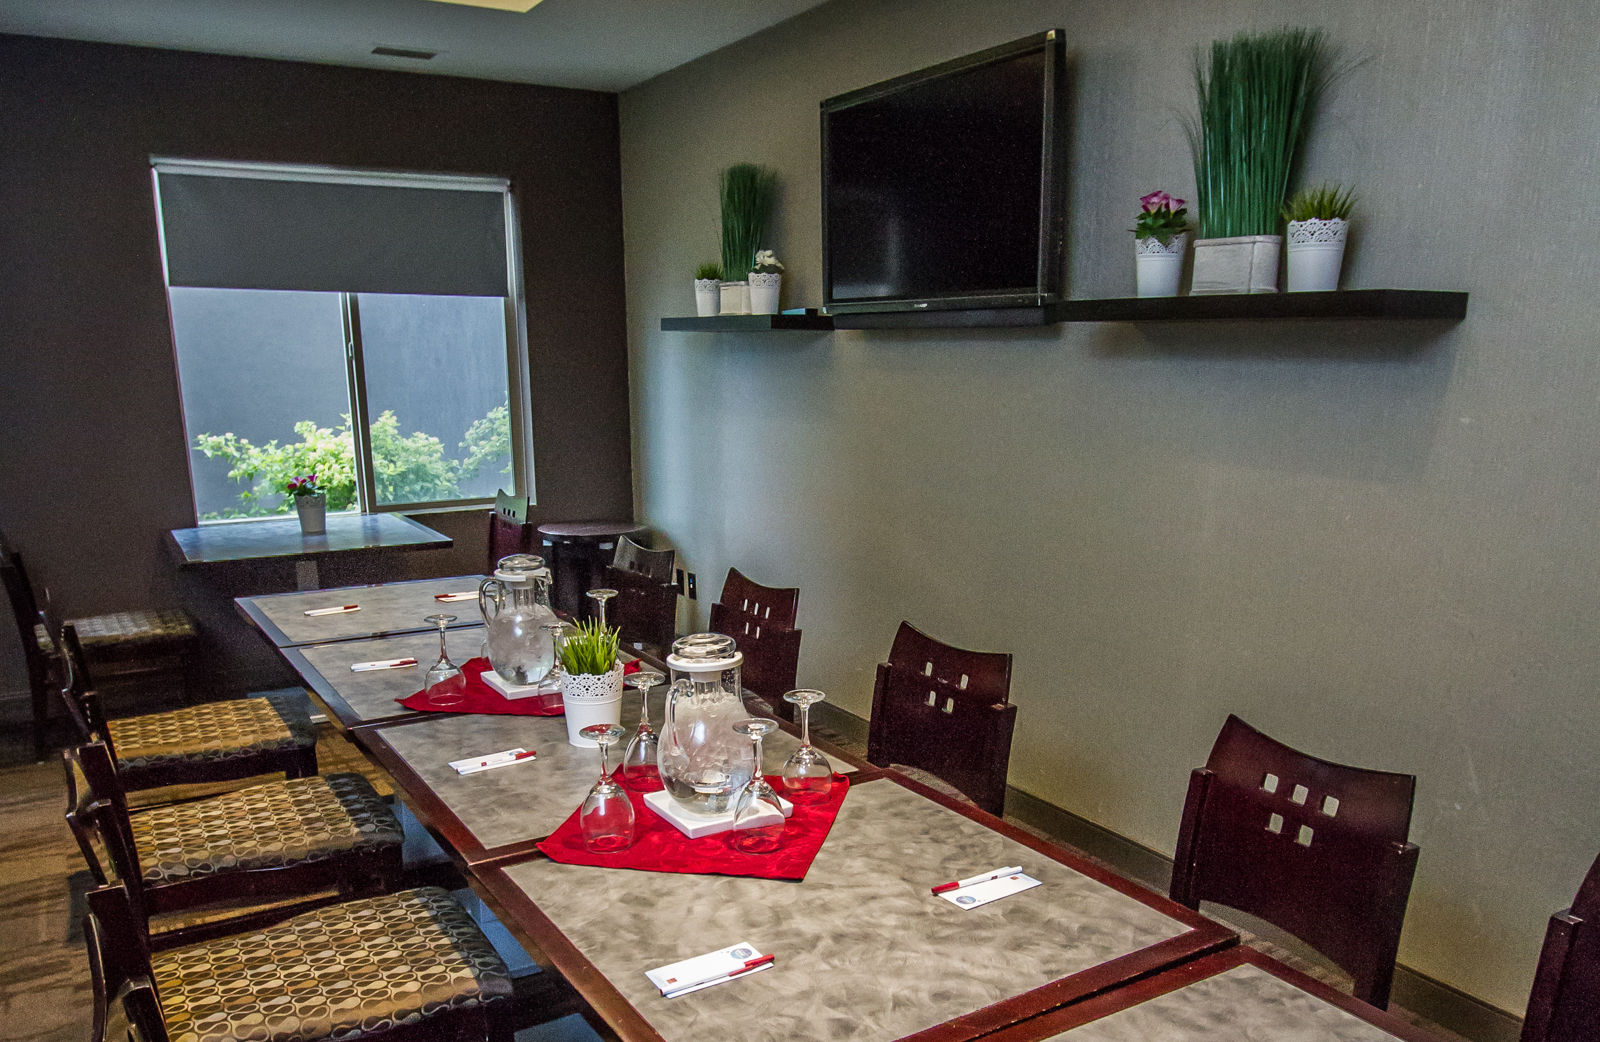 Your Guests Will Marvel At The Splendour Of Surrounding Okanagan Valley Wine Region As They Relax In Environs Our Bright Comfortable Hotel